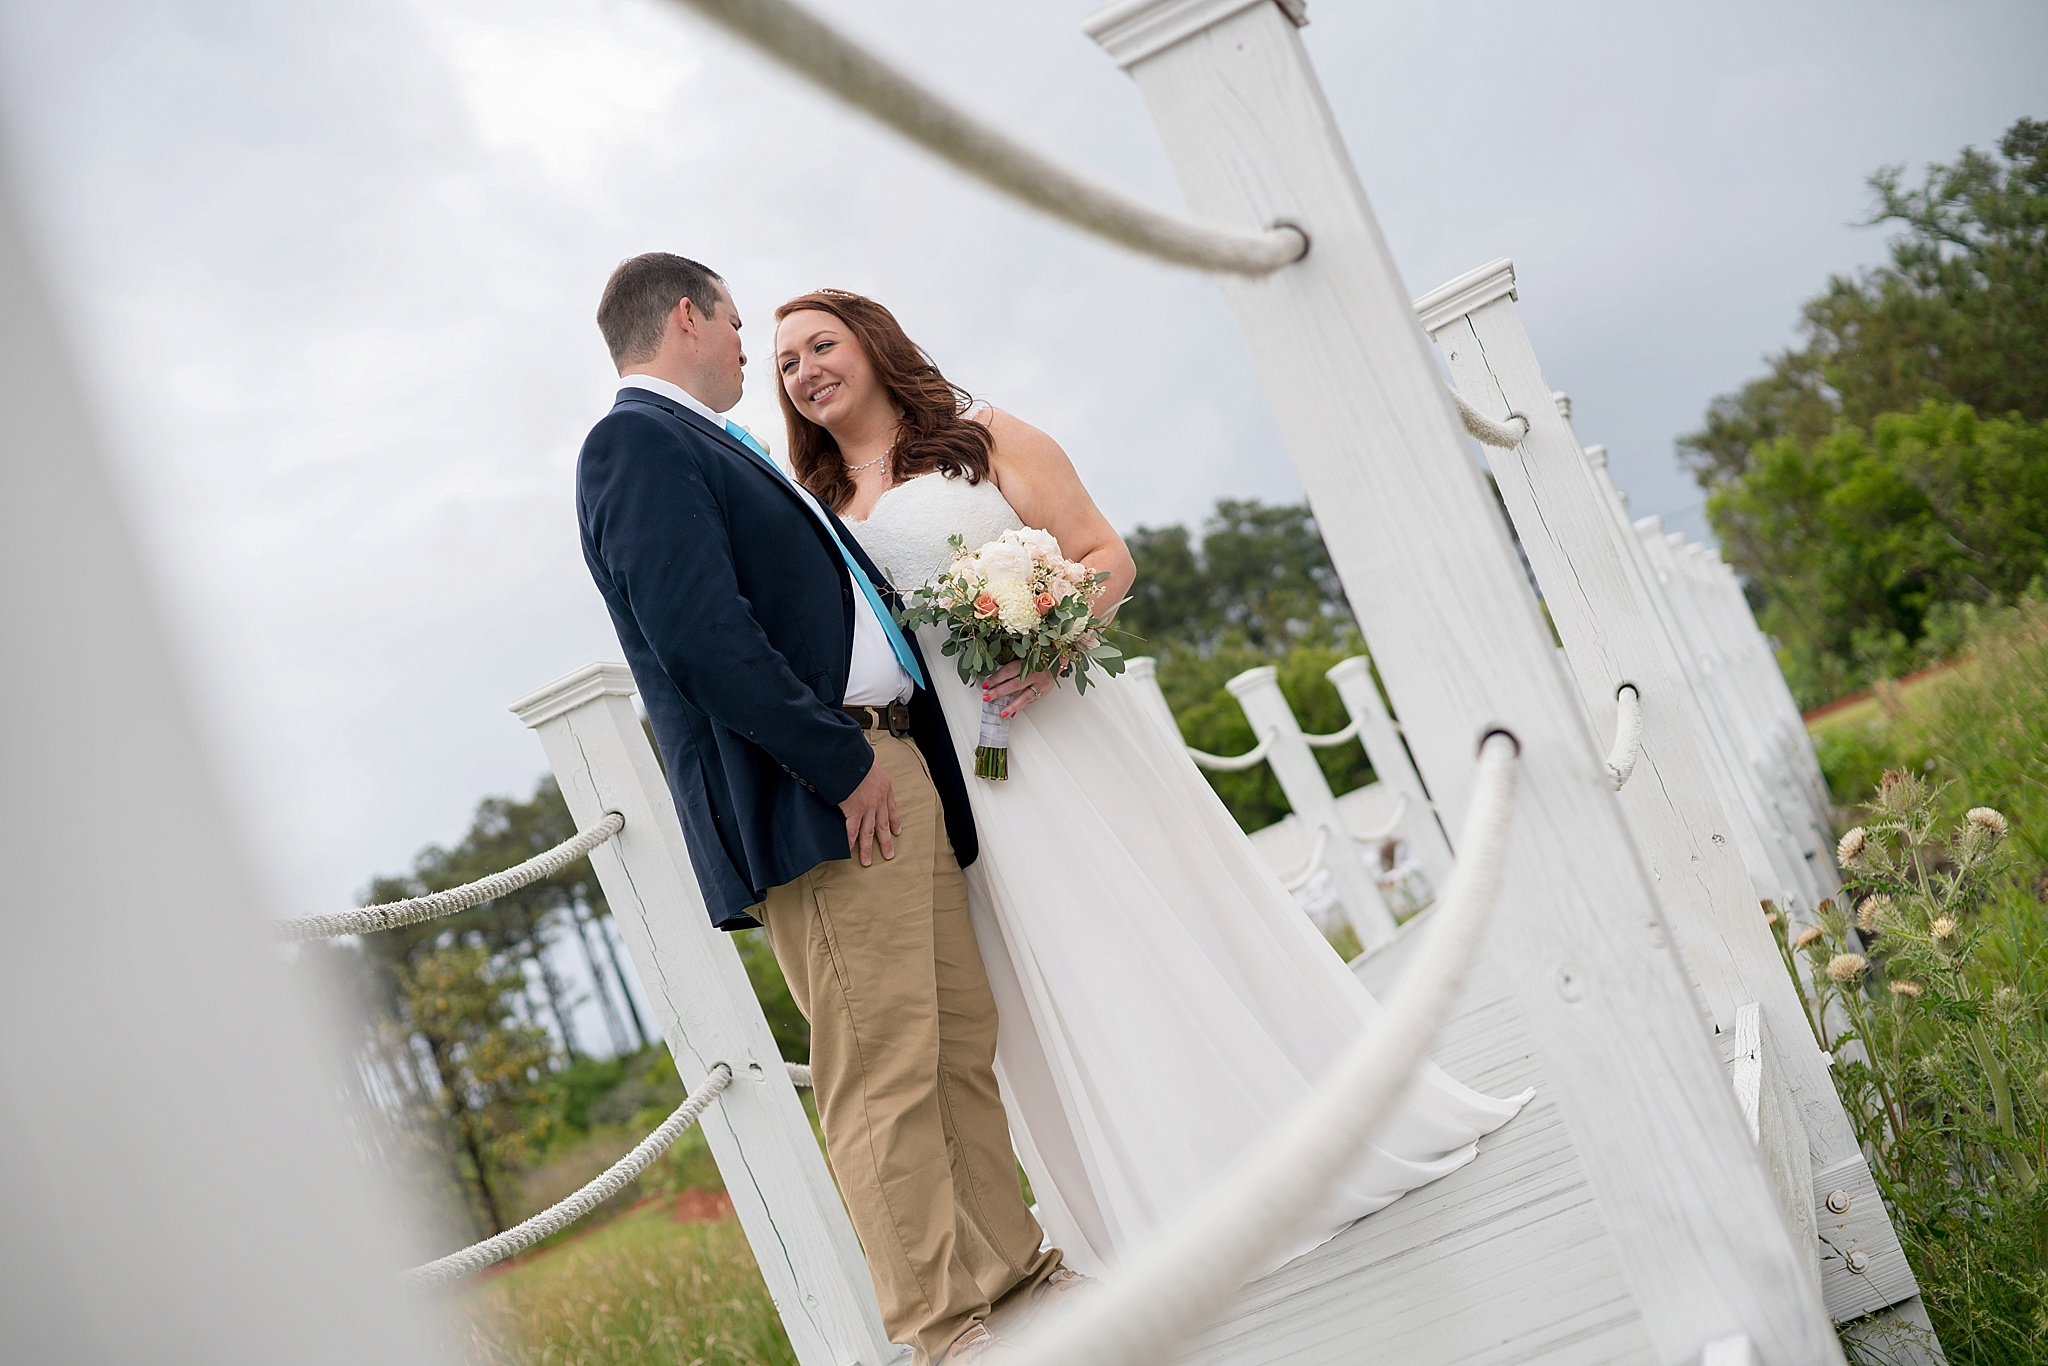 Manteo-NC-Wedding-Photographer-133.jpg